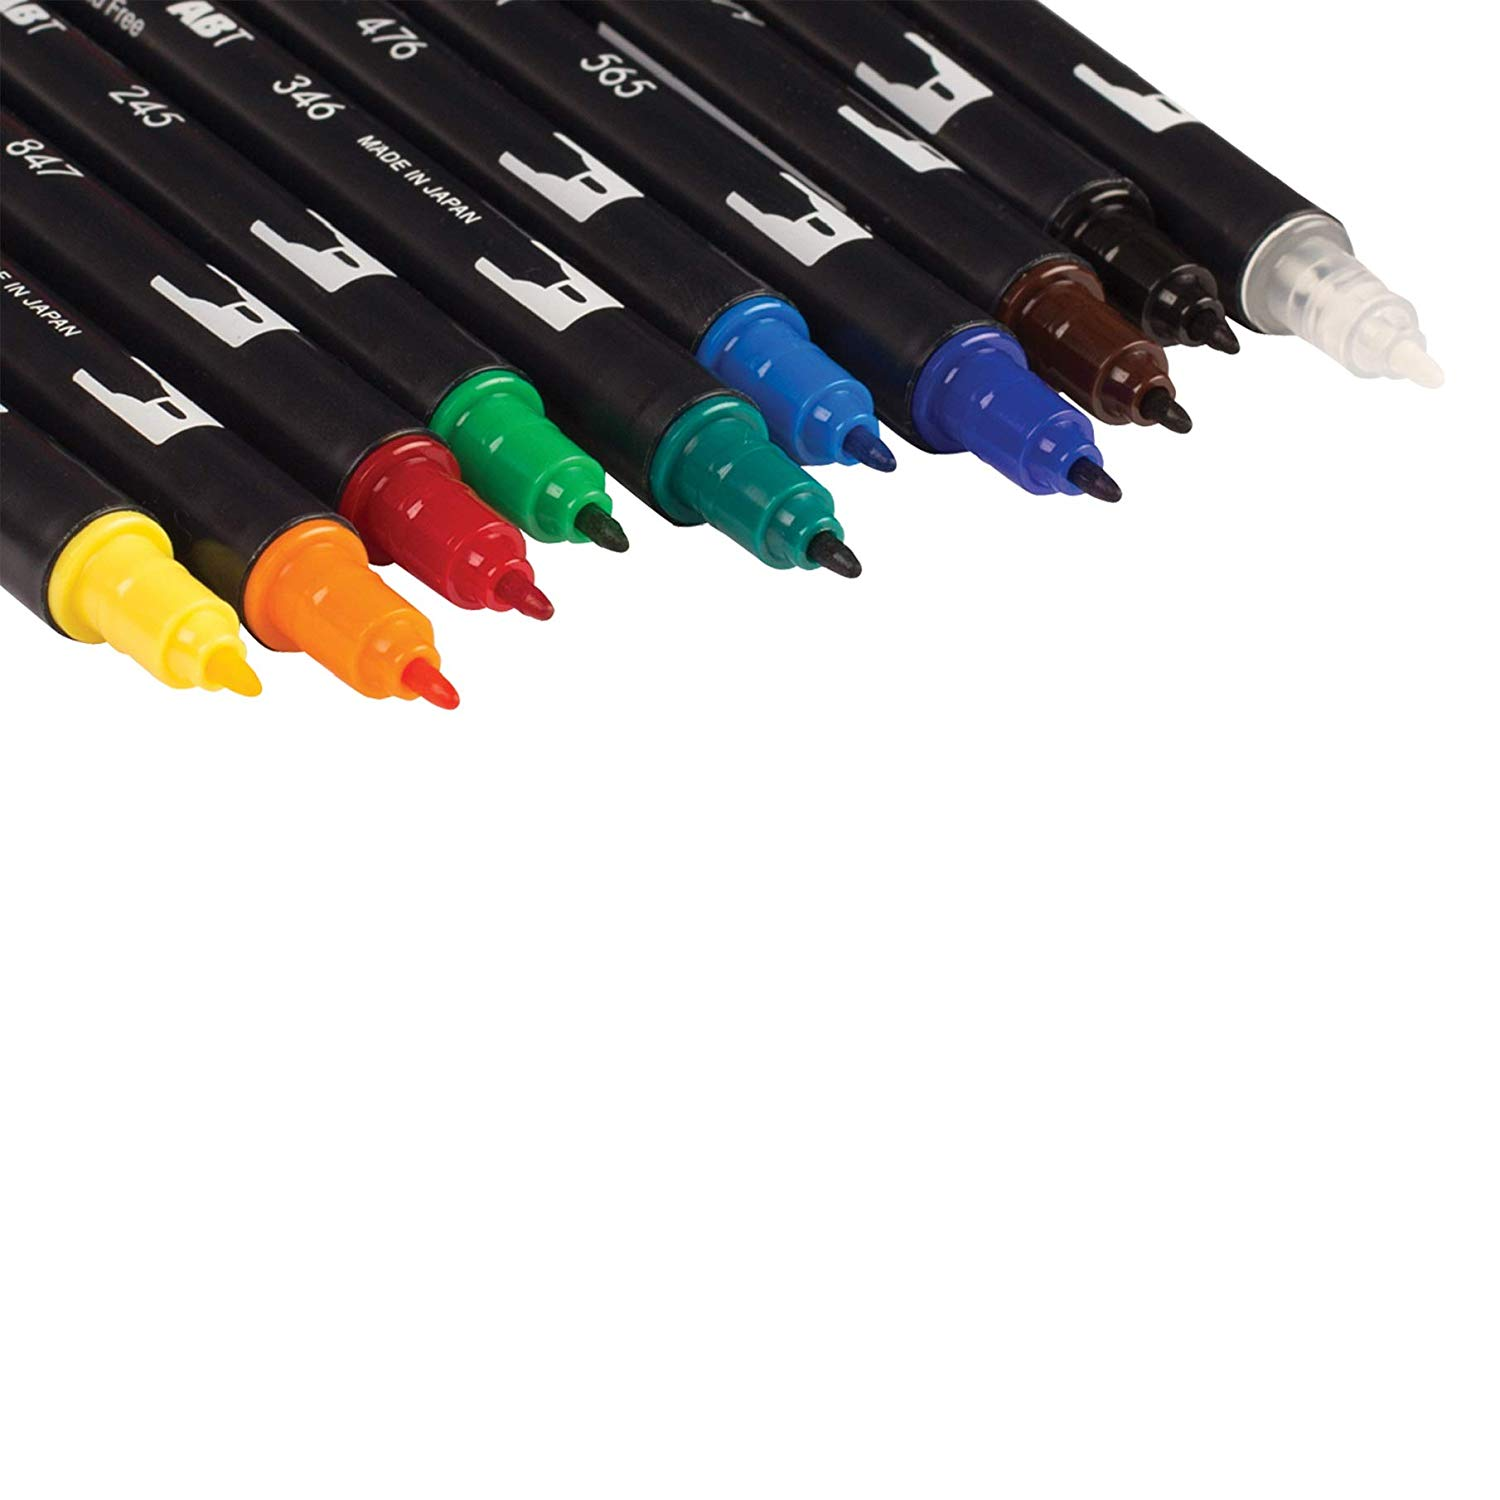 Tombow Dual Brush - Set 10 Marcadores; Colores Primarios